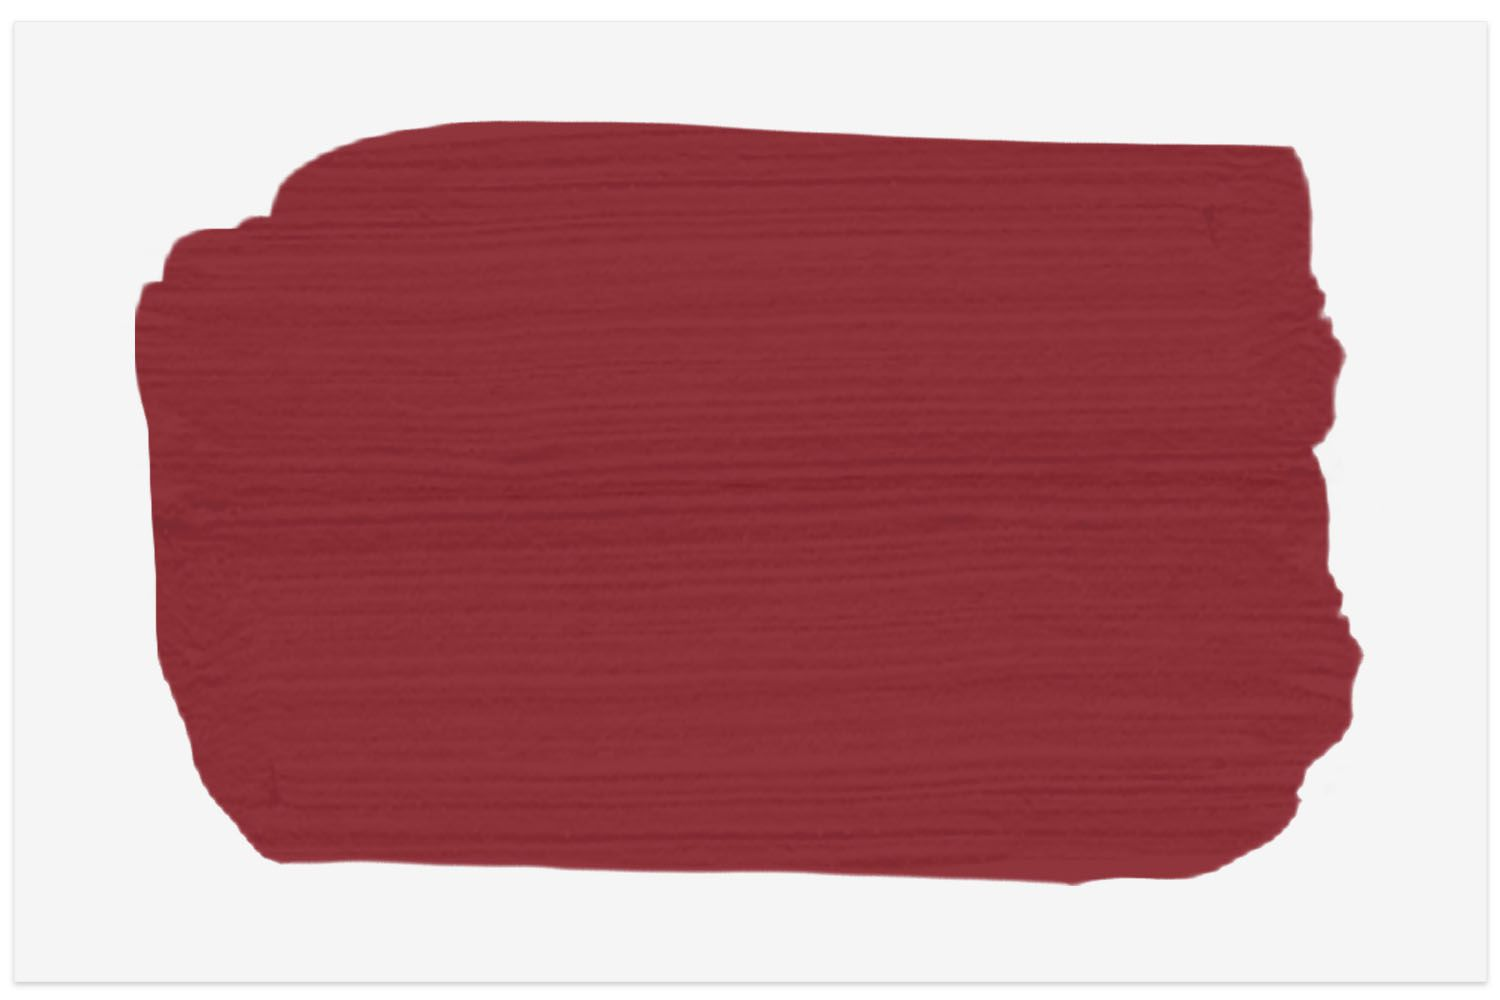 Glidden Red Delicious paint swatch